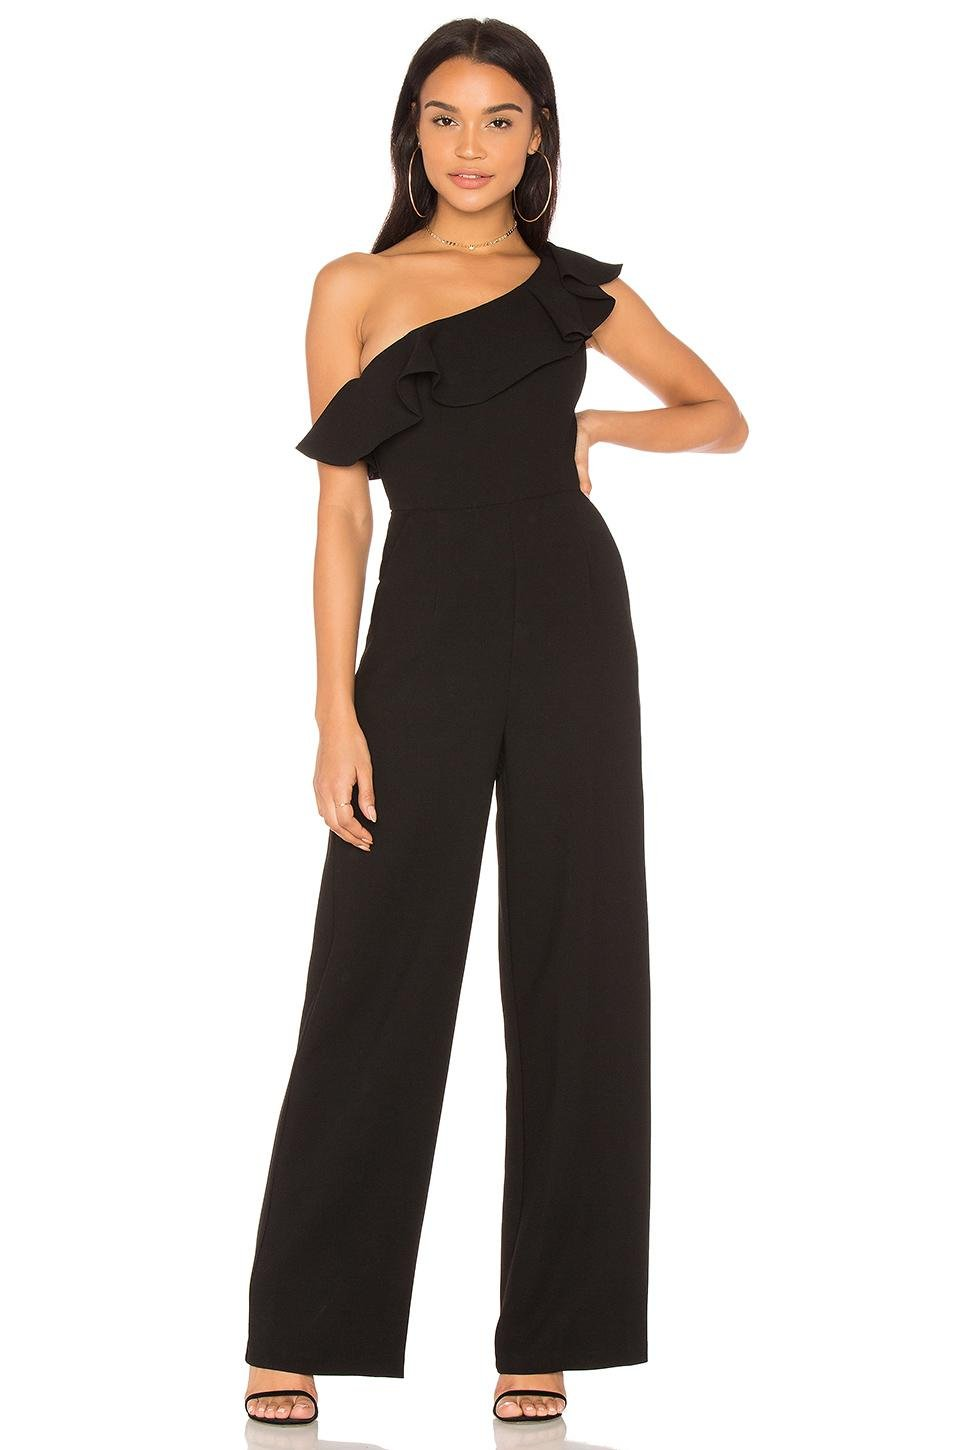 6f006fac2a6a Bcbgeneration One Shoulder Ruffle Jumpsuit in Black - Lyst